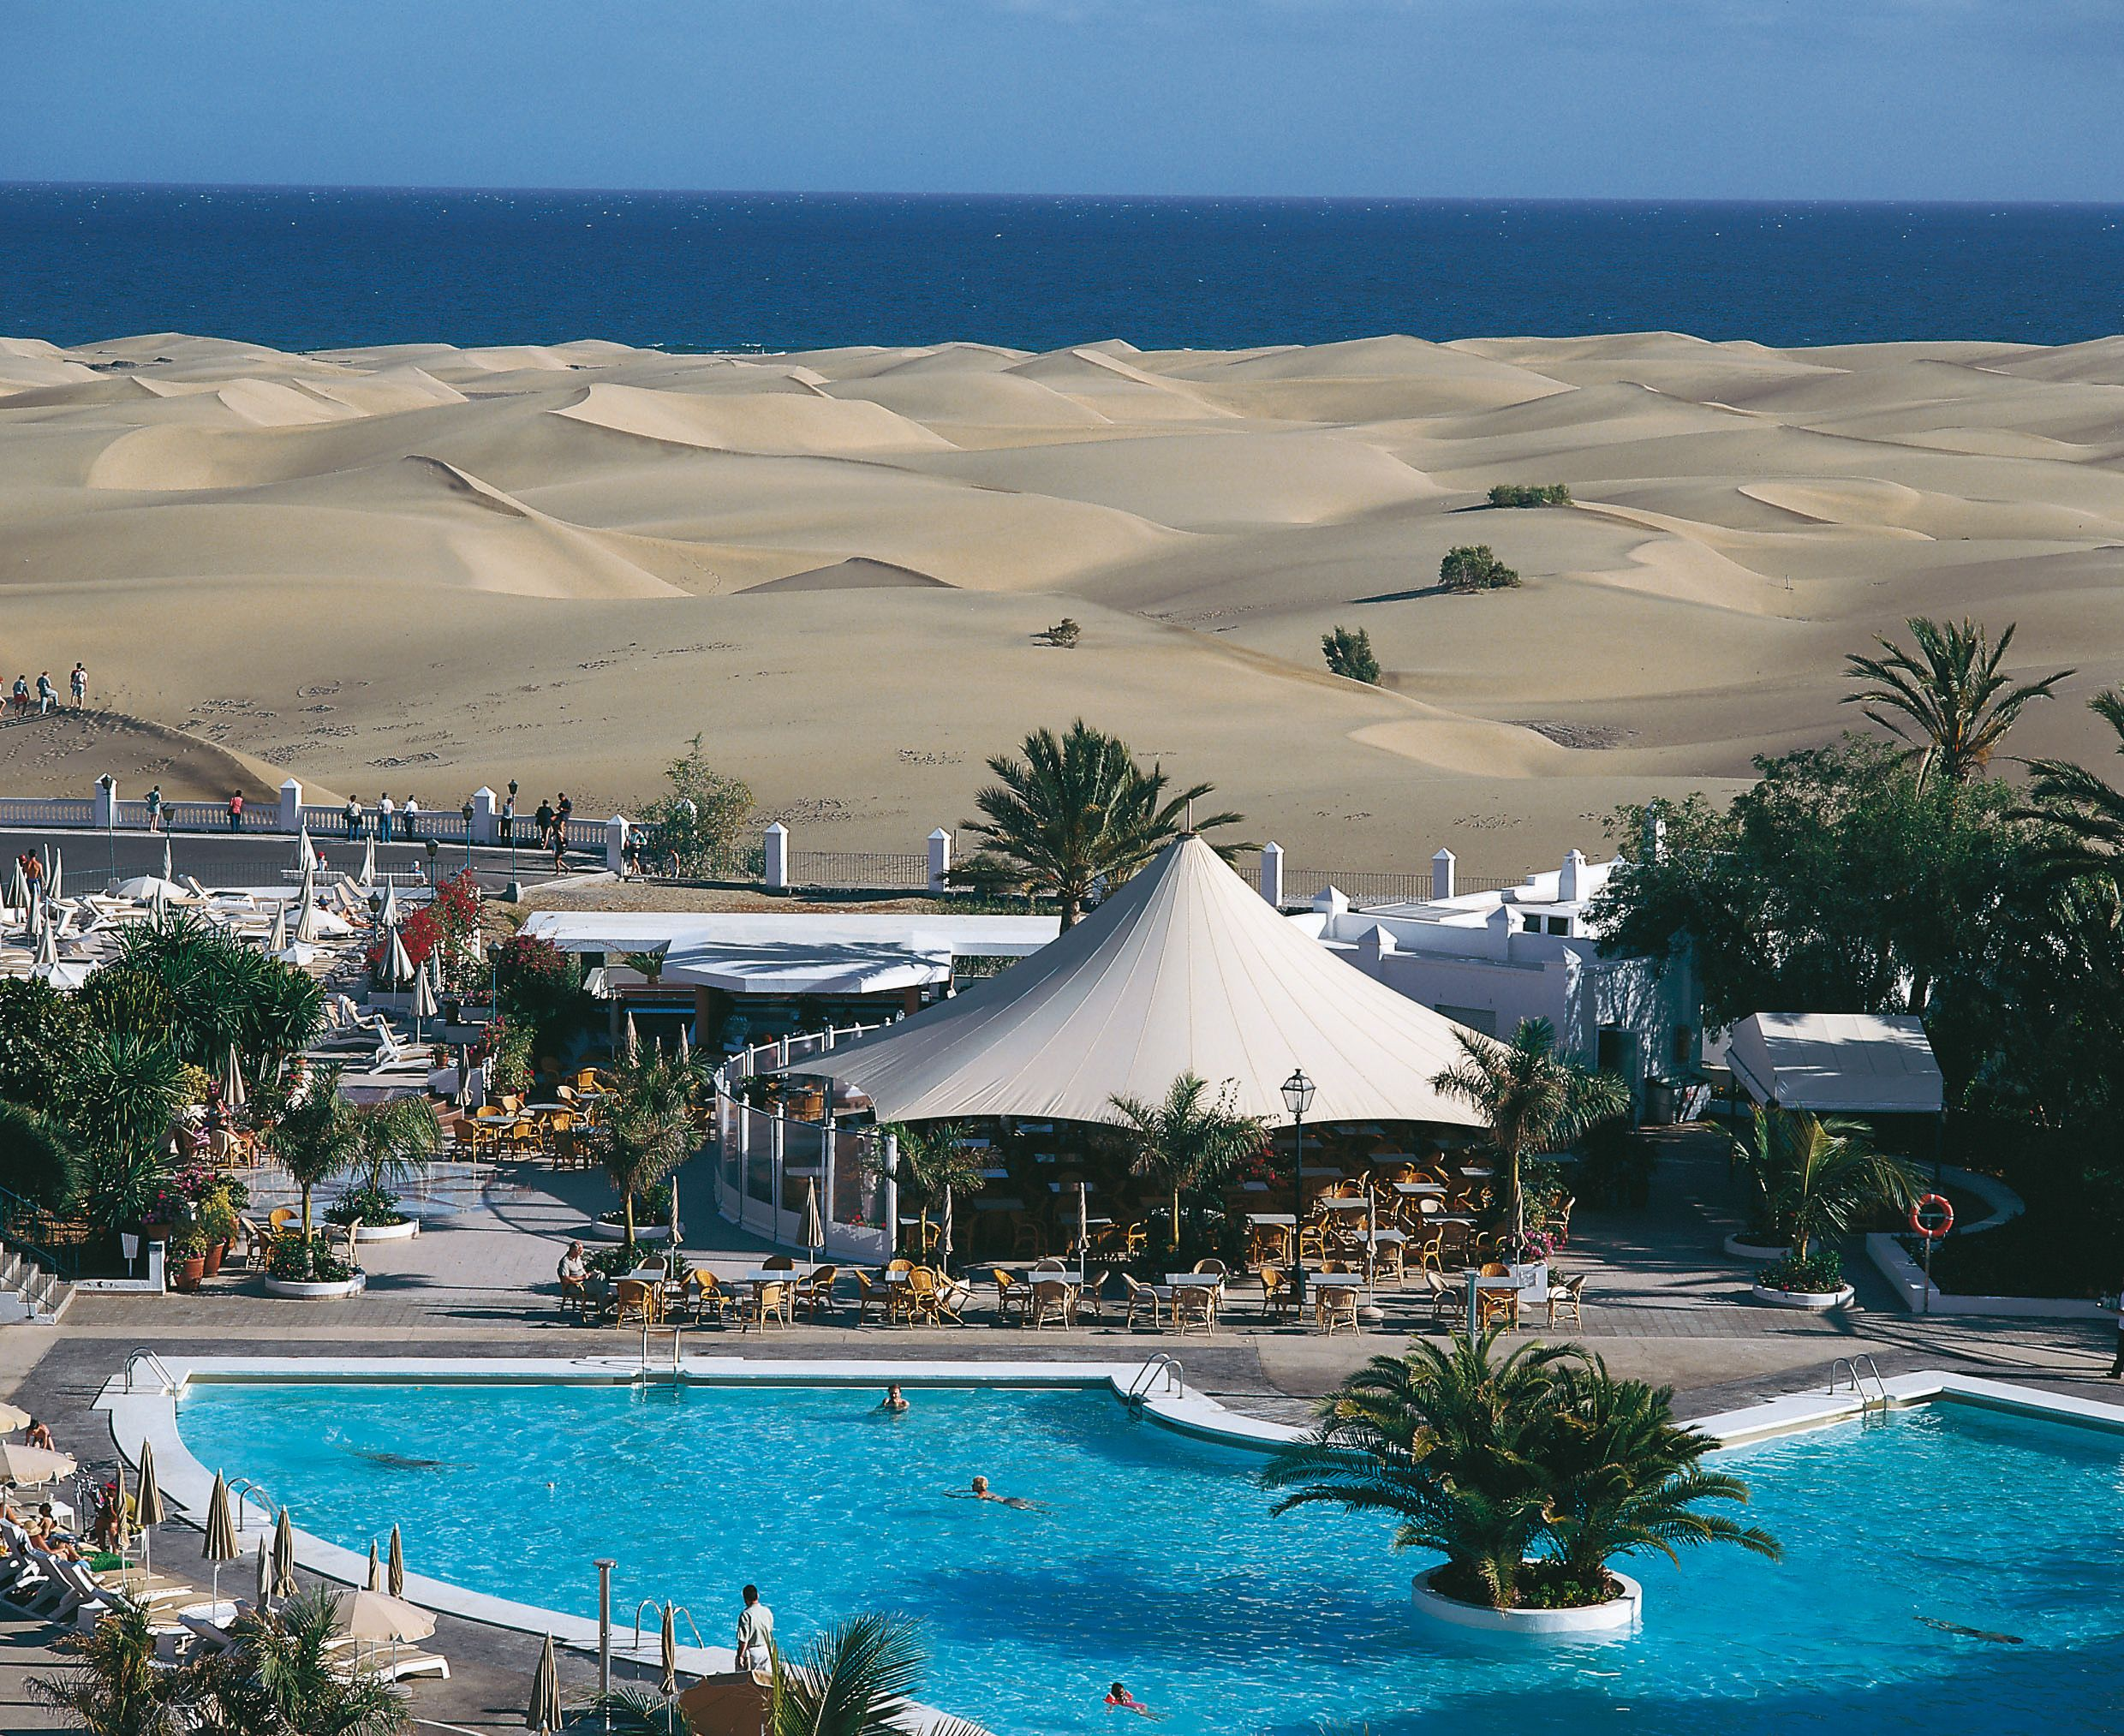 Grand Canary Island Located In The Atlantic Ocean By The